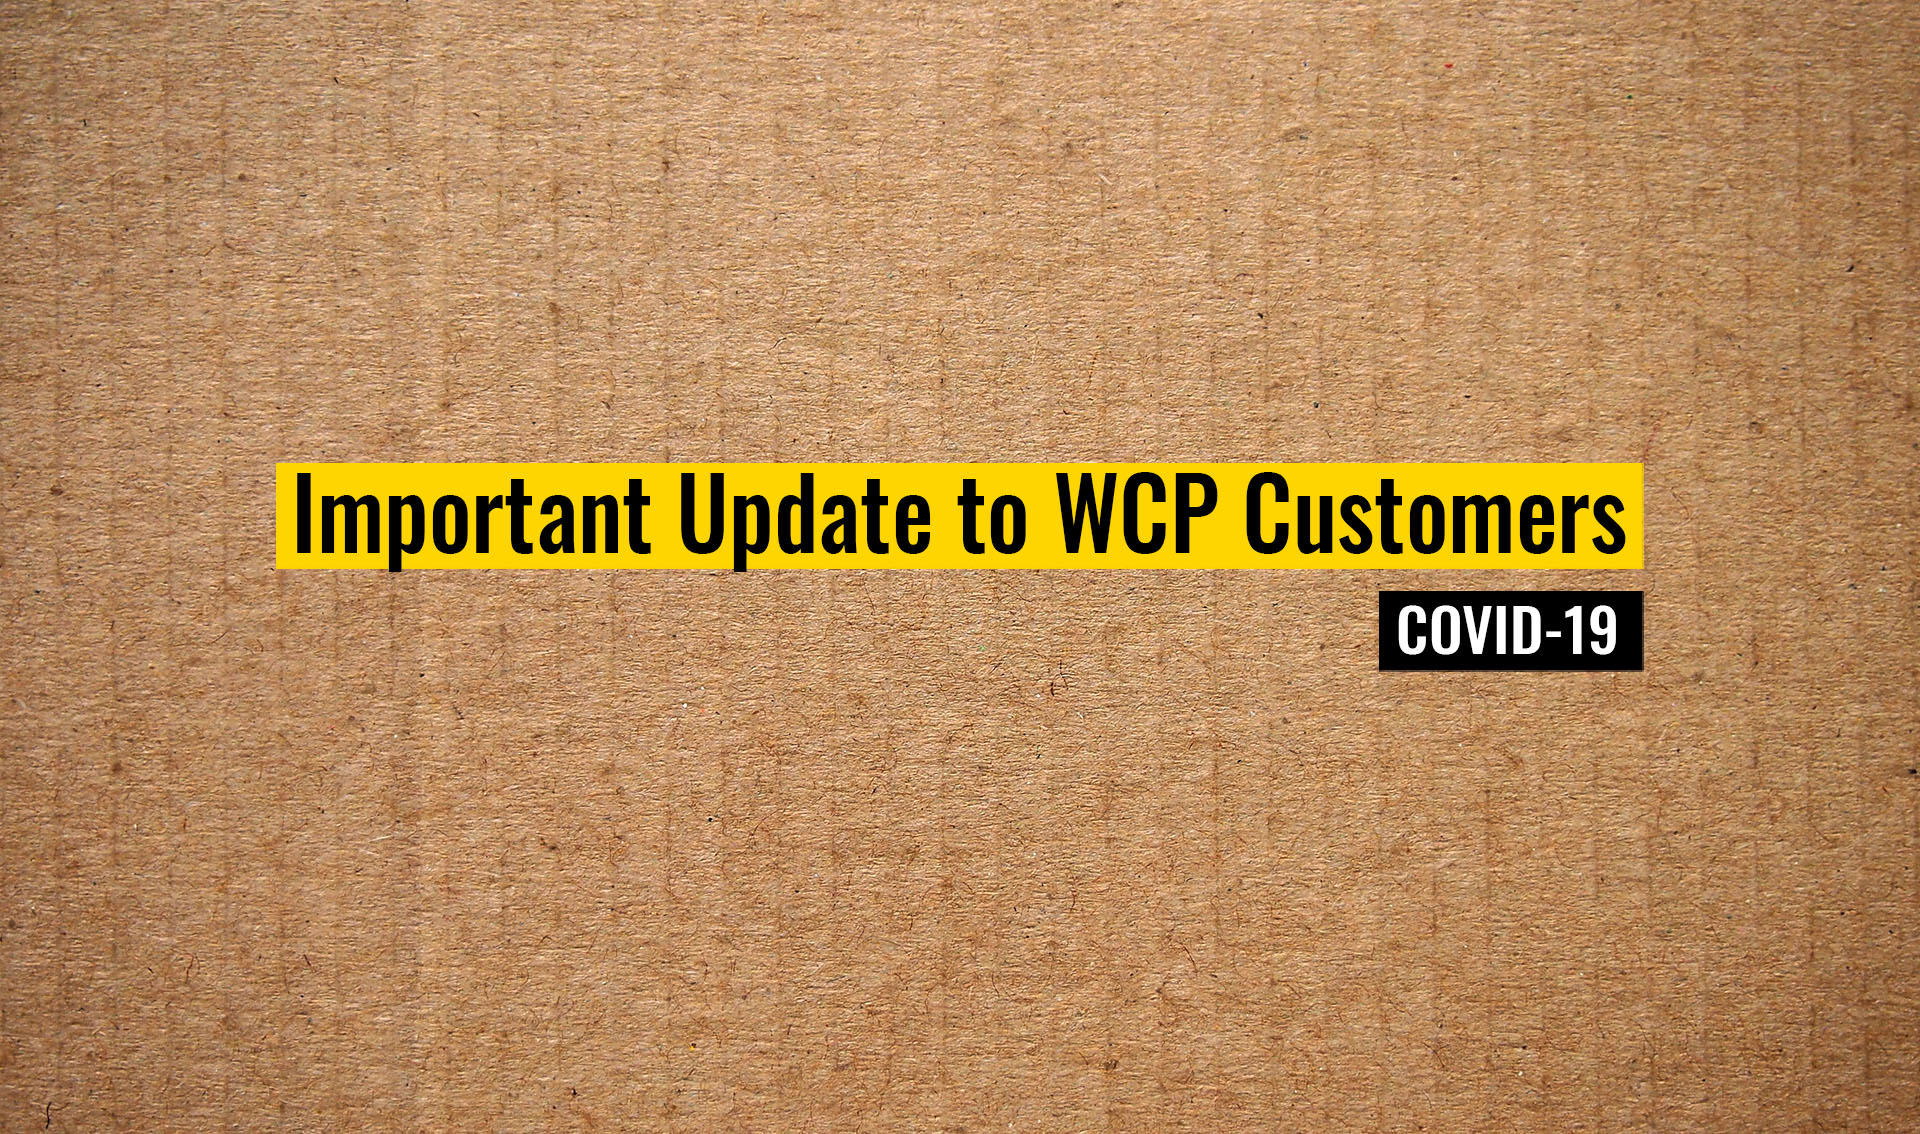 Update to Customers about how COVID-19 is impacting WCP Solutions and the supply chain